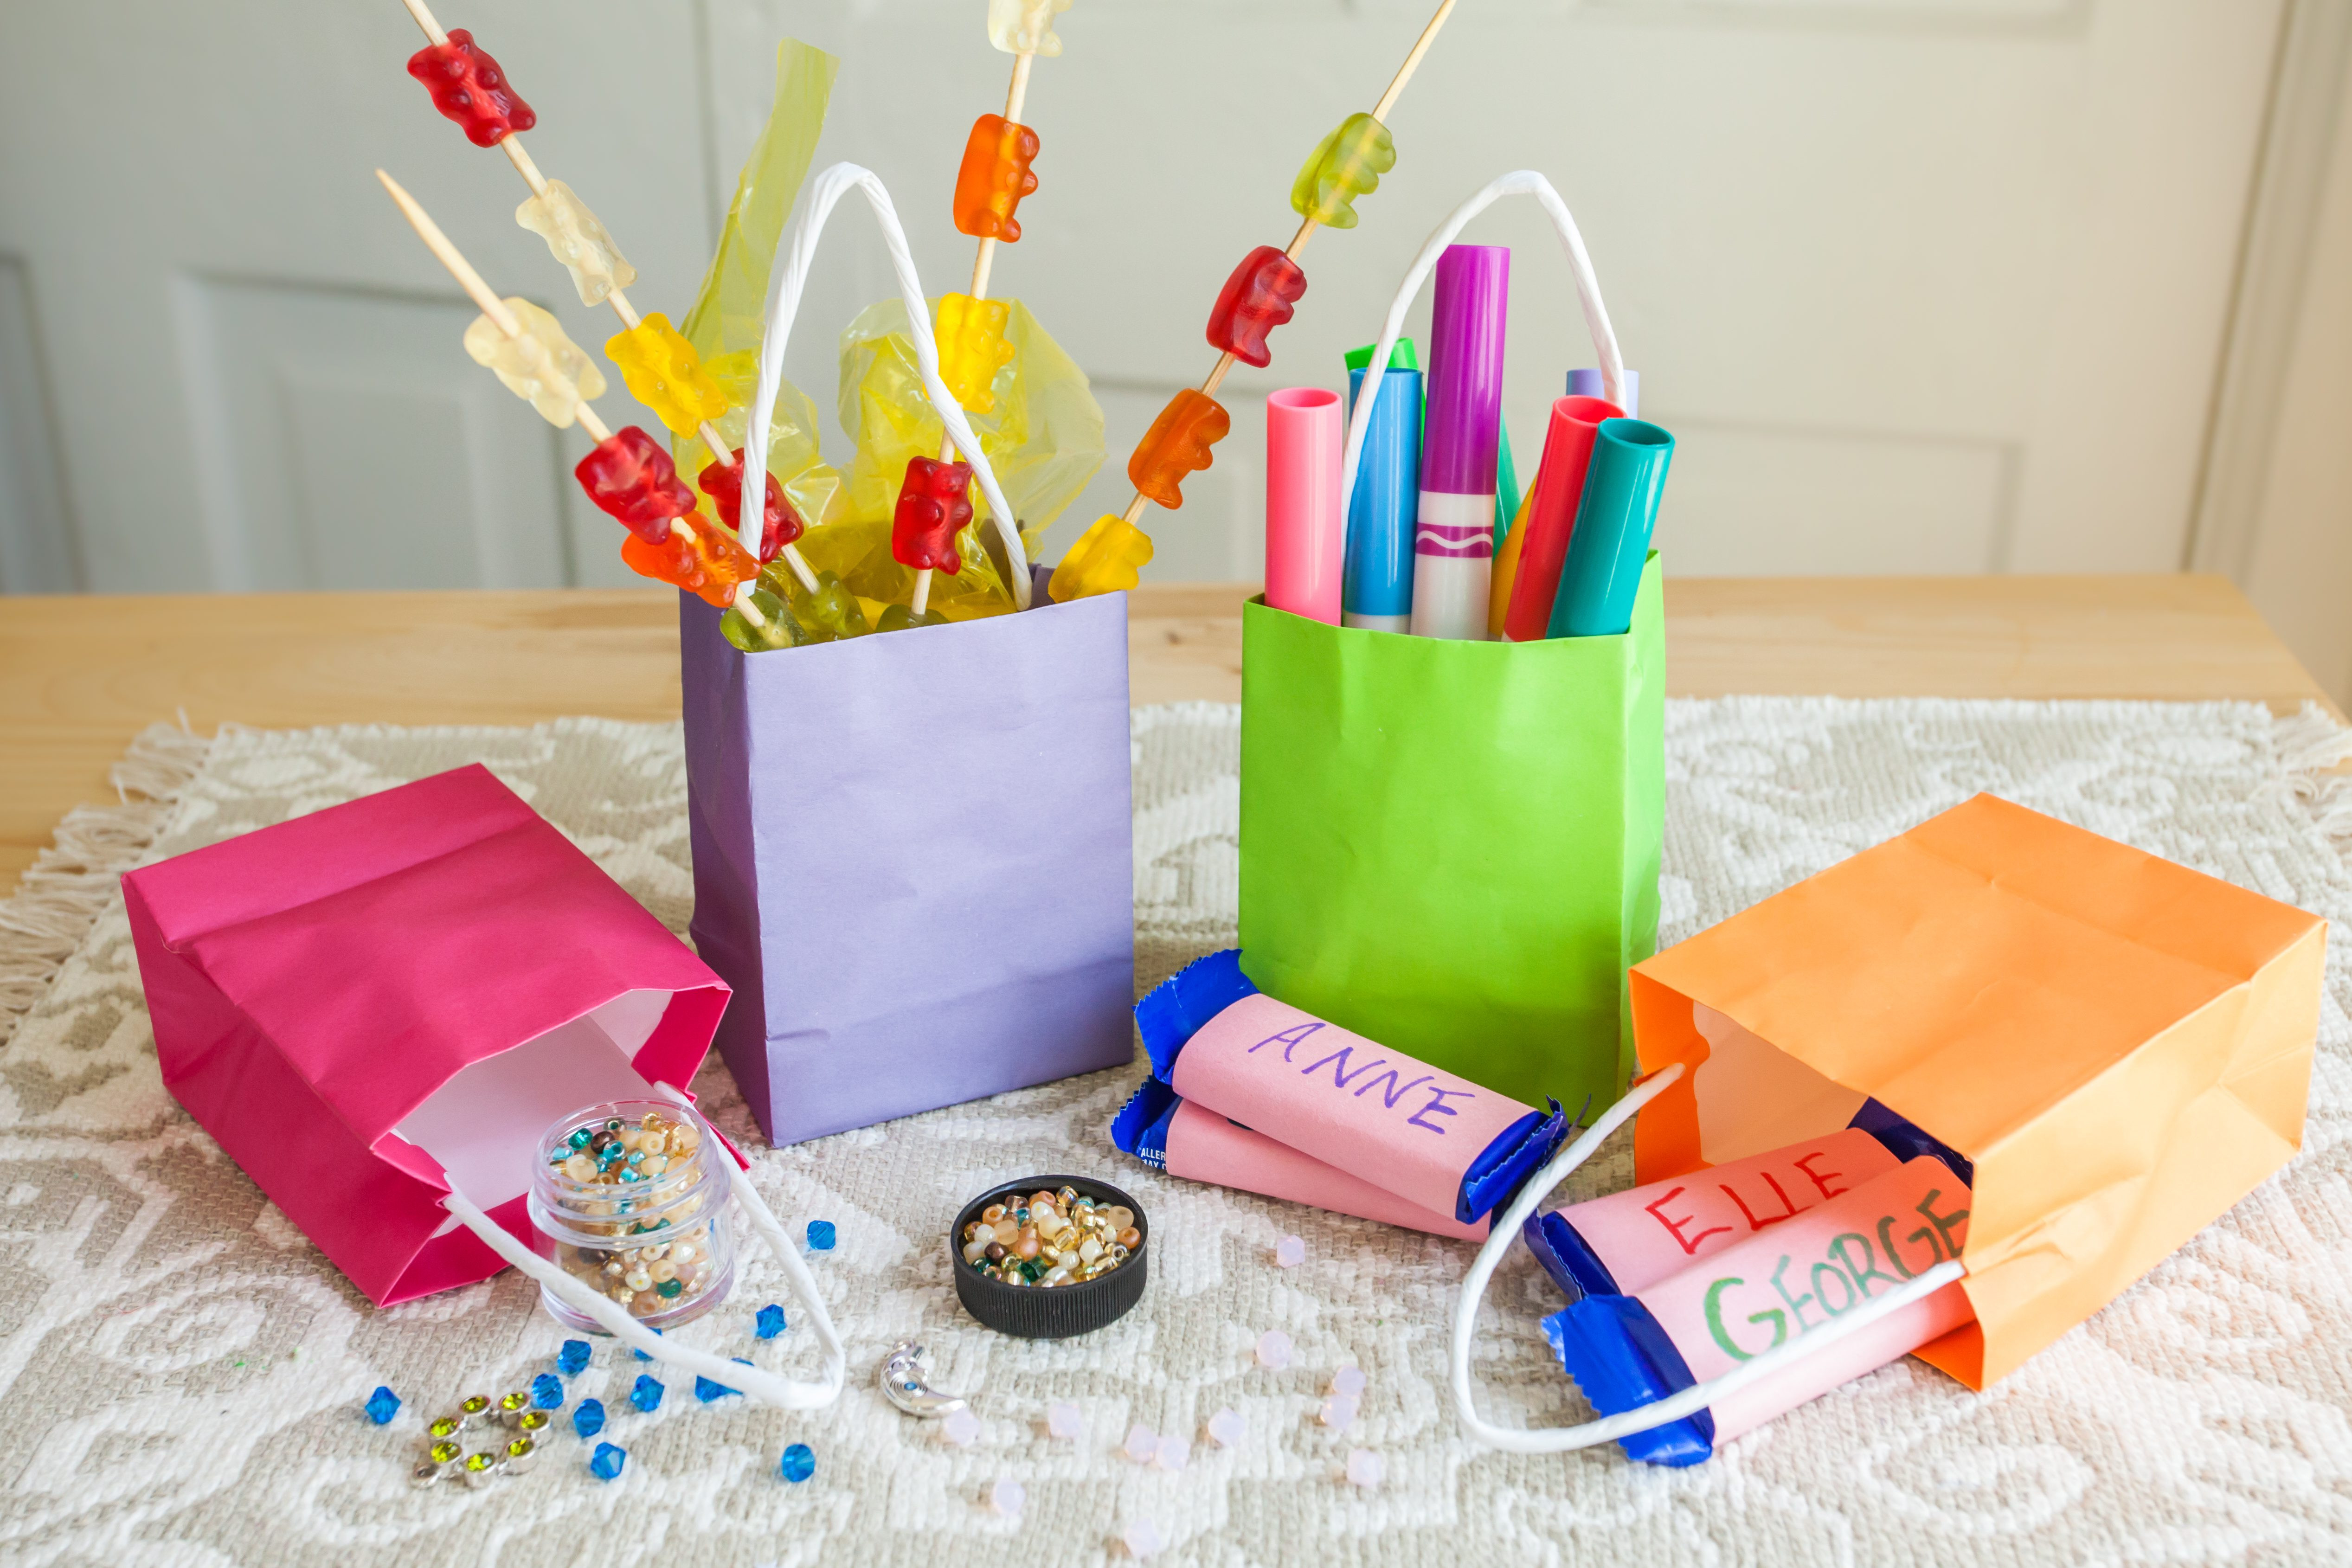 Best ideas about Gift Bags Ideas . Save or Pin Ideas for Kids Birthday Party Gift Bags with Now.